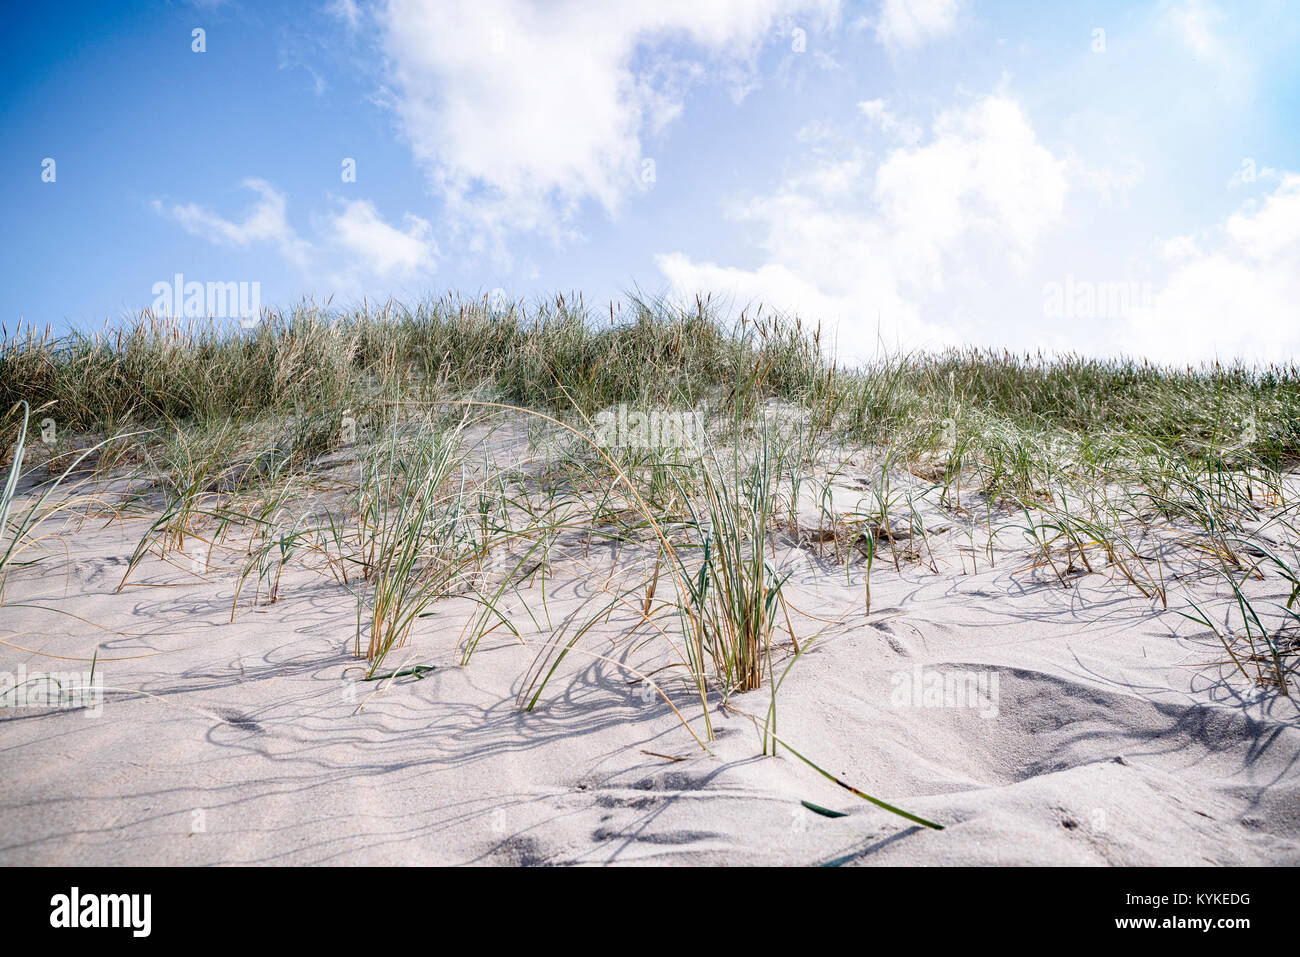 Lyme grass in the sand on a beach dune in danish nature in the summer - Stock Image